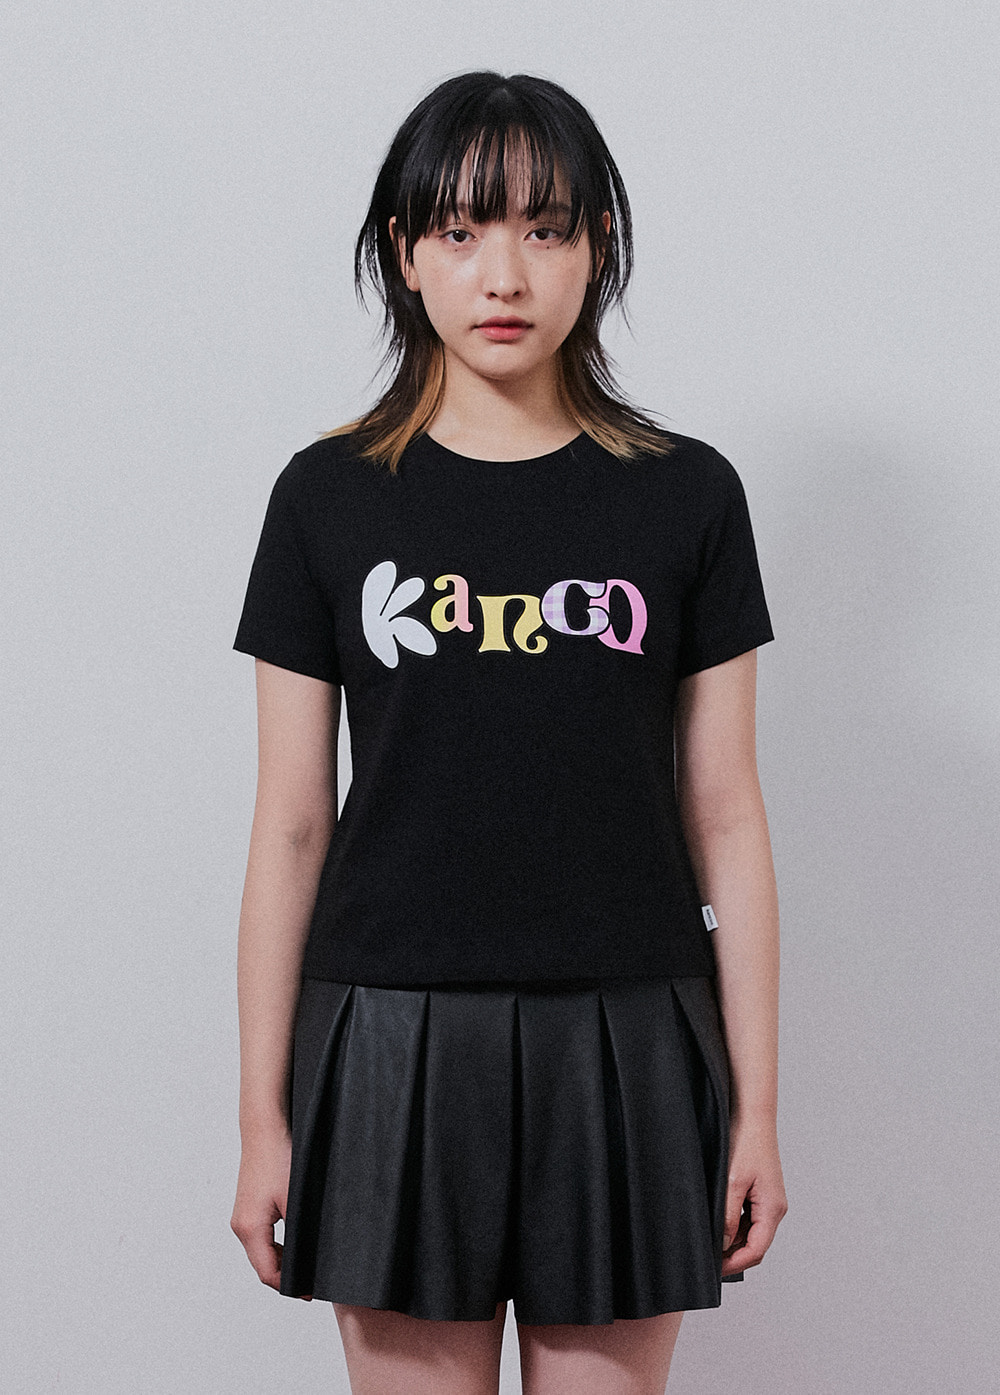 KANCO TYPO CROP TEE black